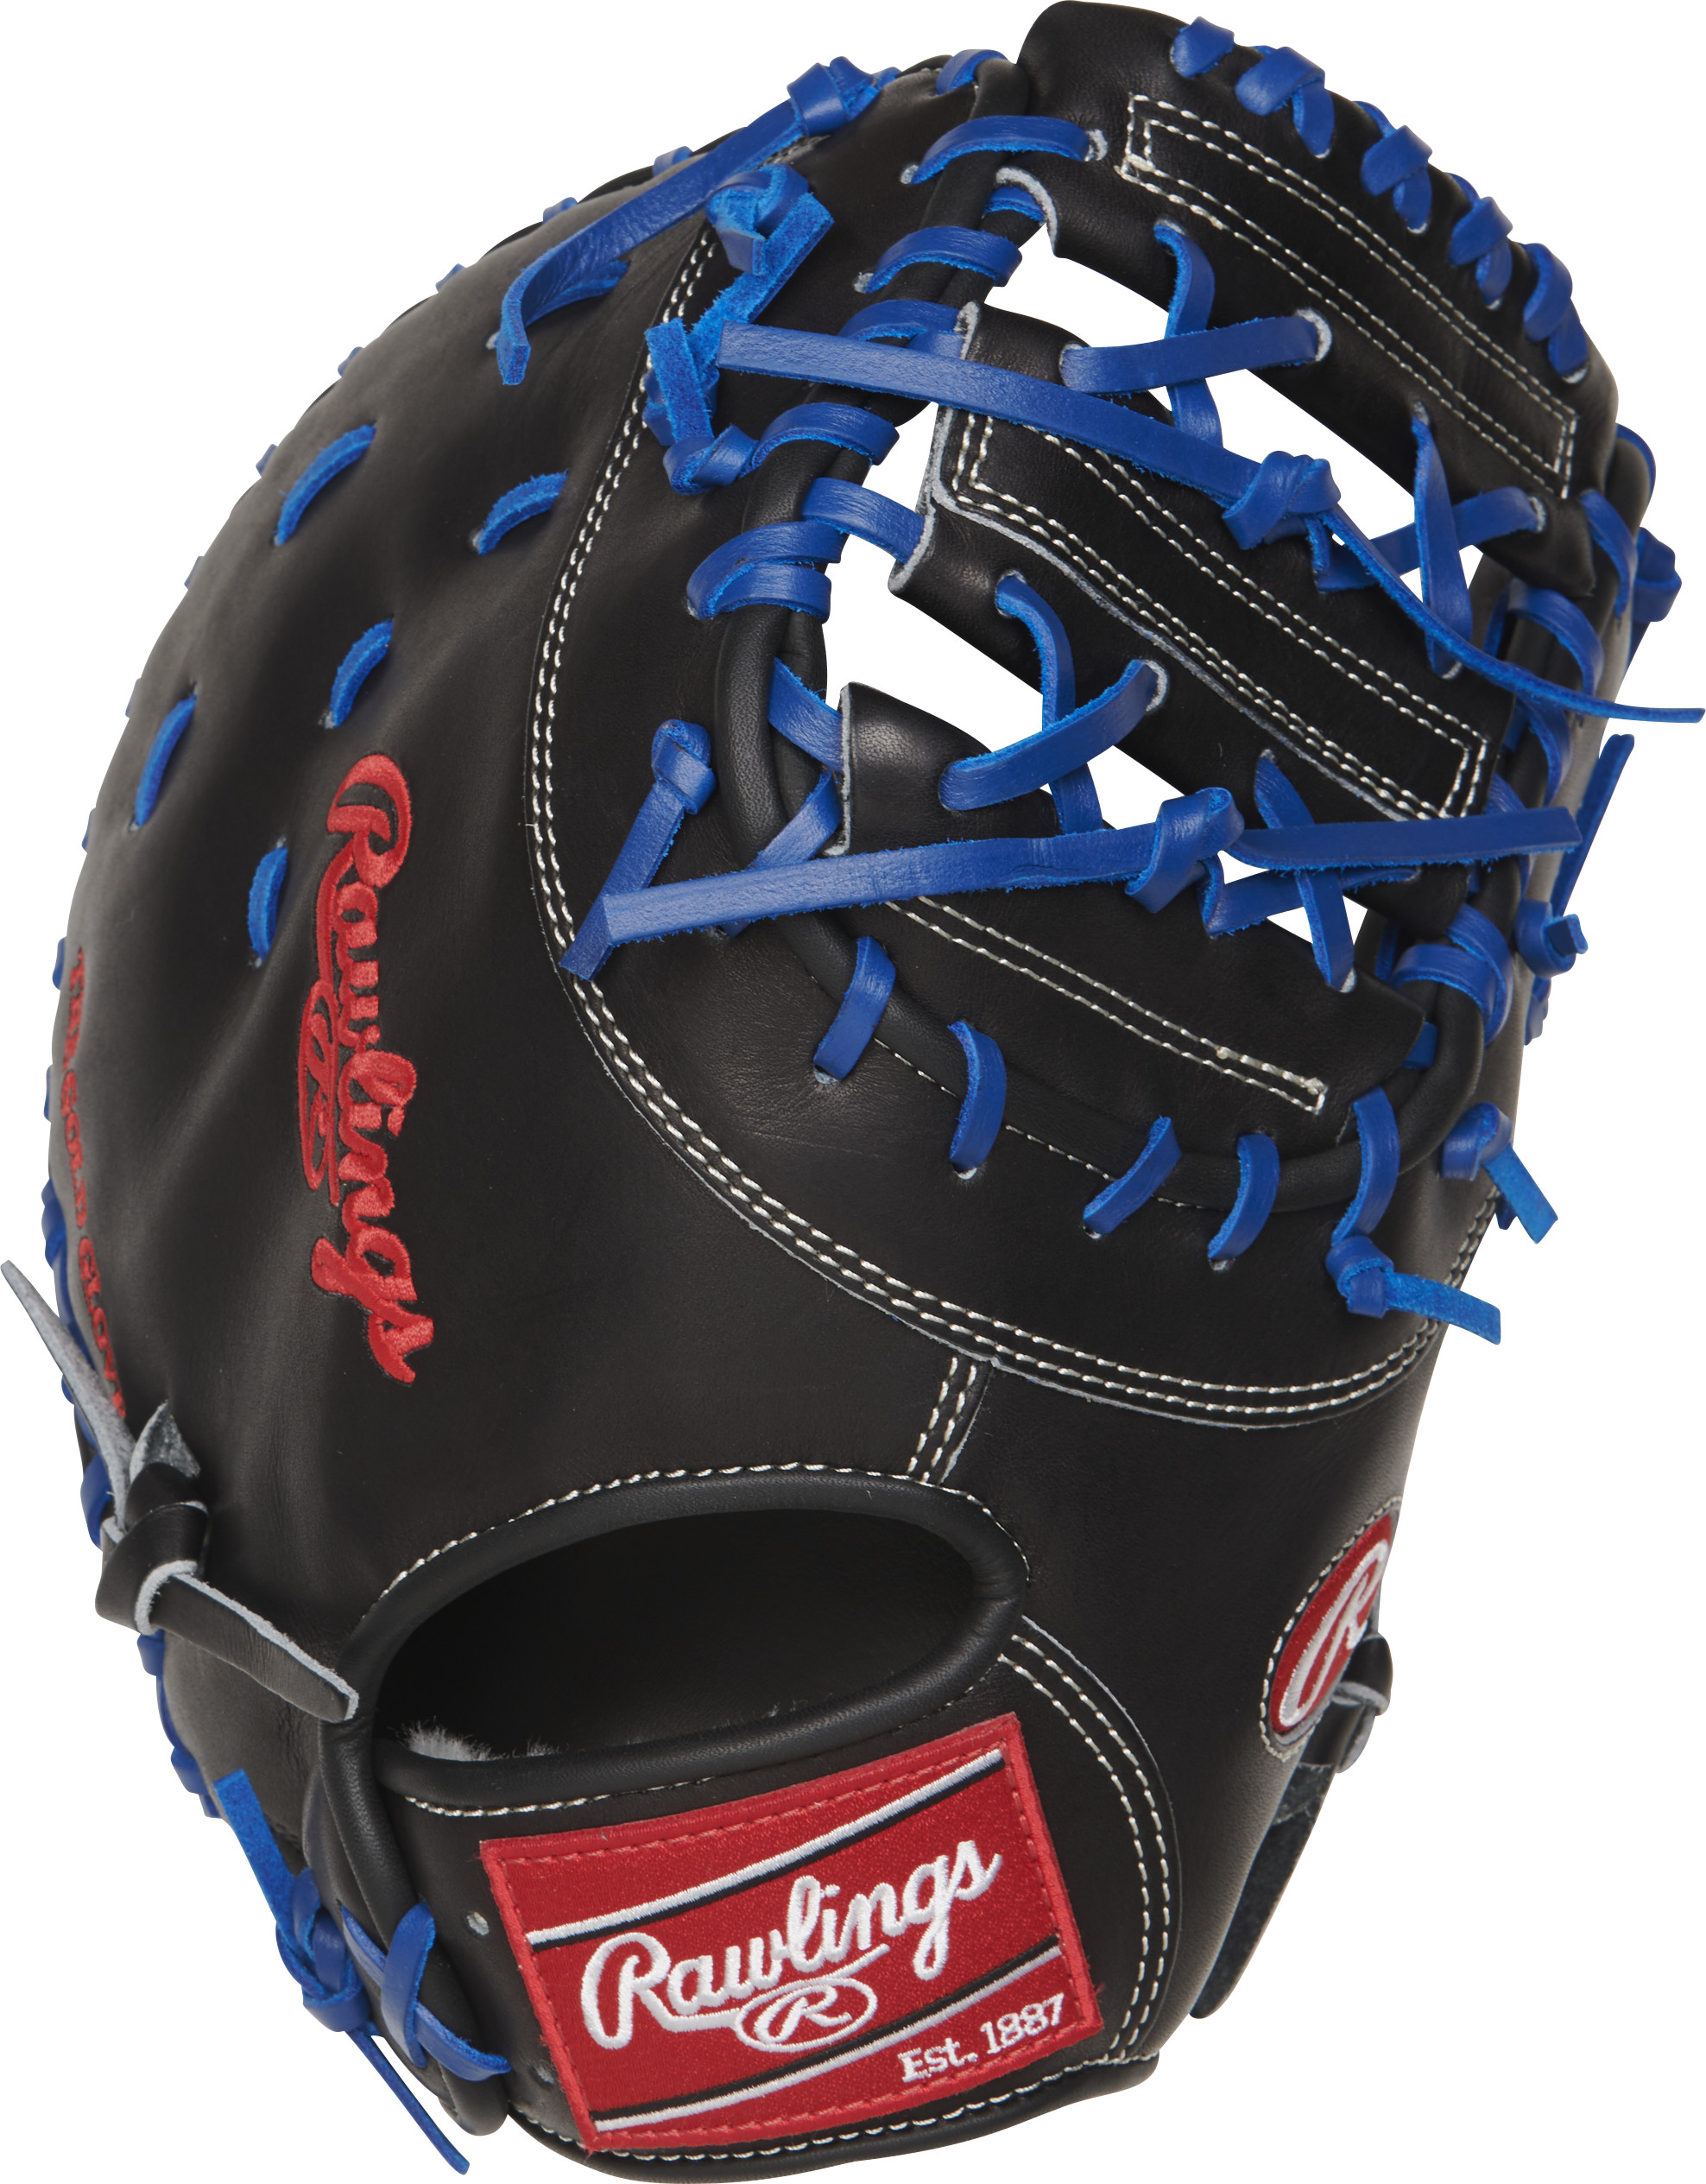 http://www.bestbatdeals.com/images/gloves/rawlings/PROSAR44-2.jpg